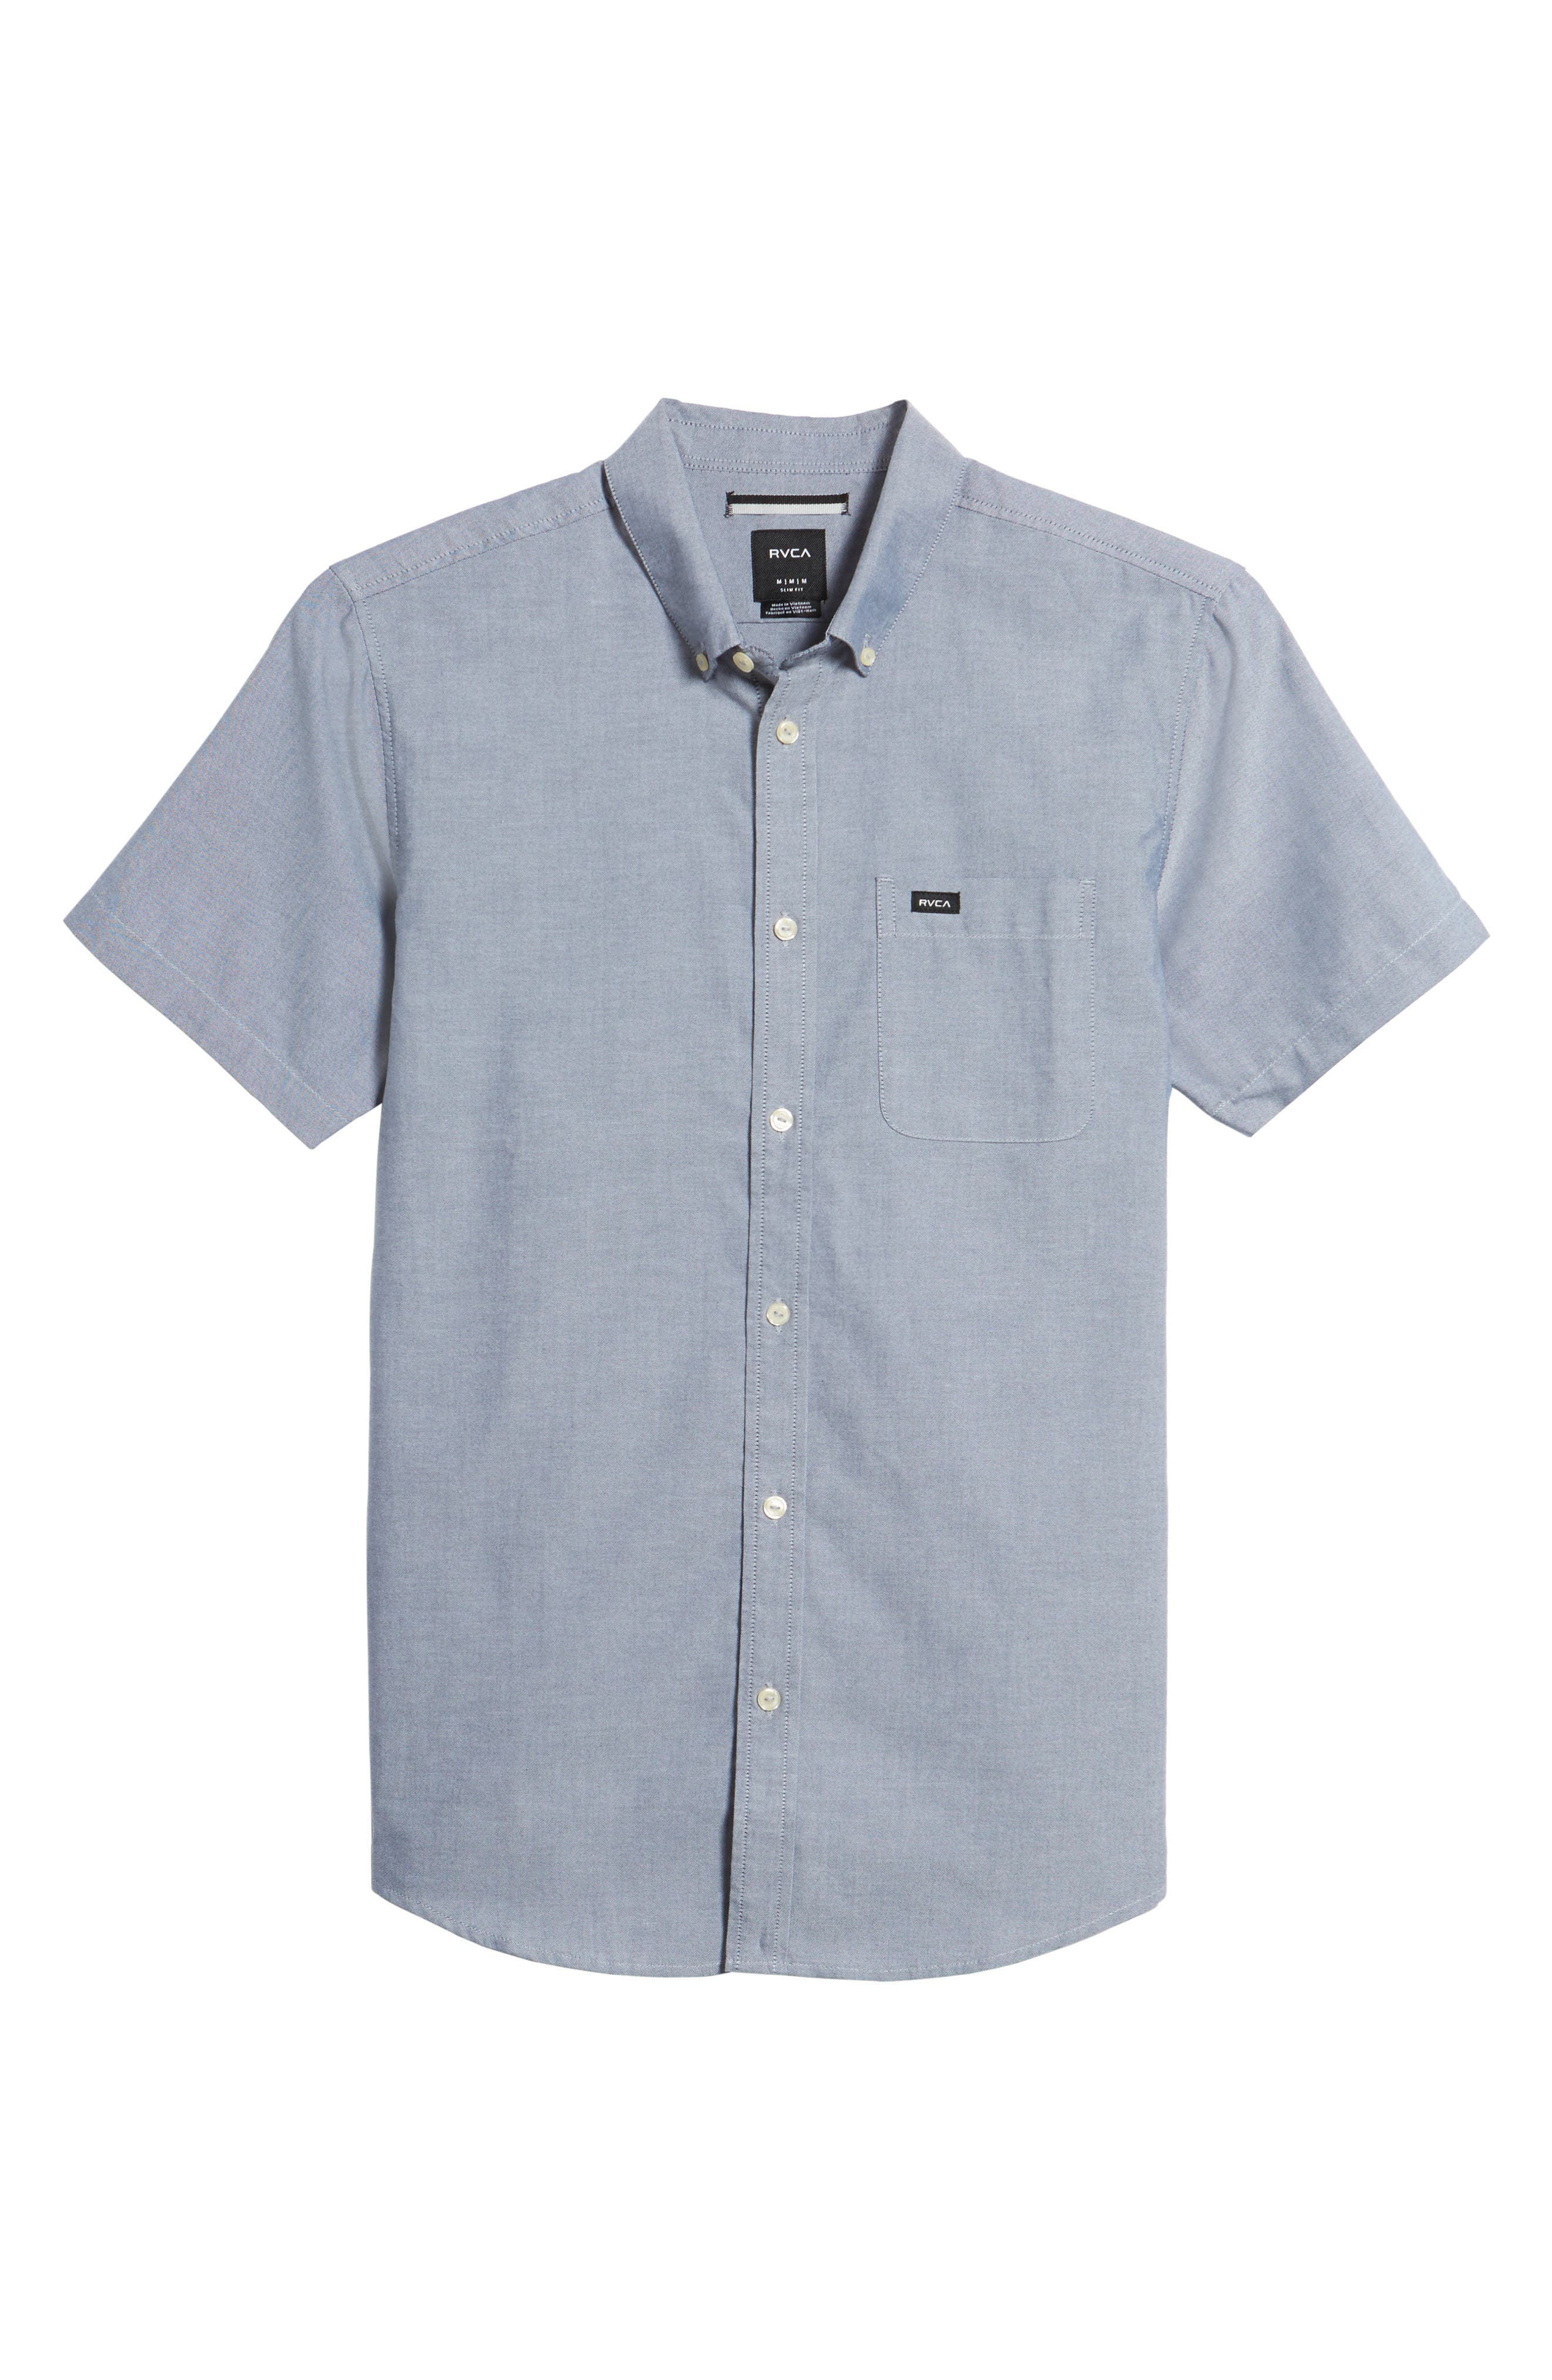 'That'll Do' Slim Fit Short Sleeve Oxford Shirt, Main, color, DISTANT BLUE